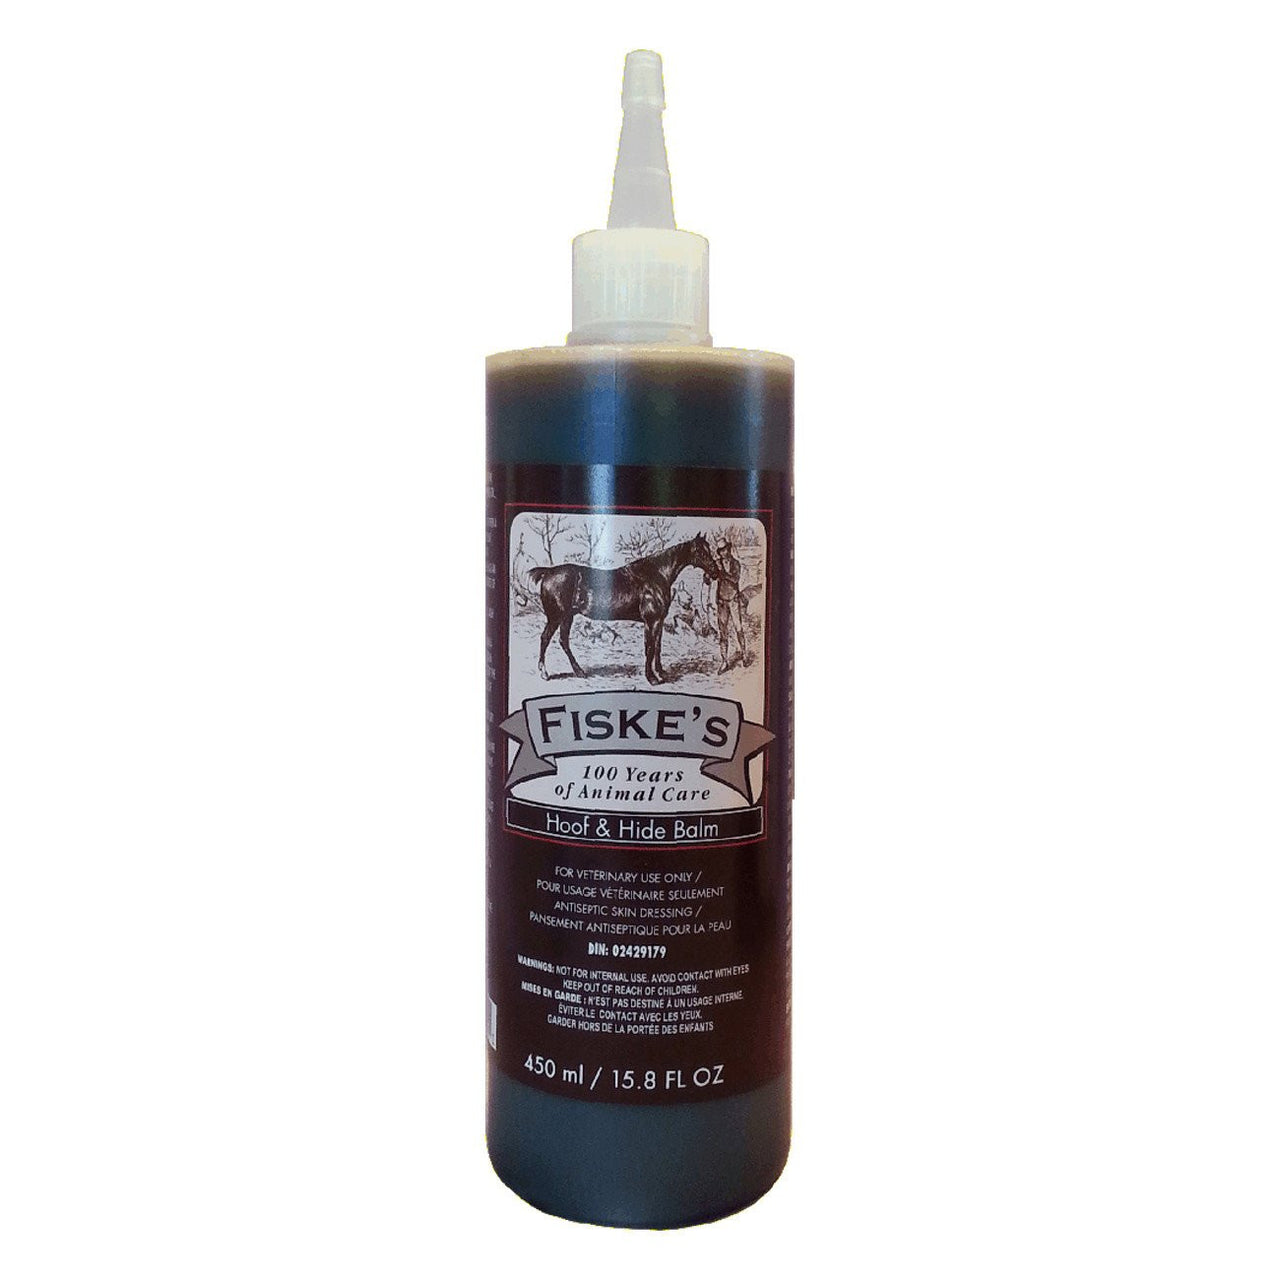 Fiskes Hoof And Hide Balm 450Ml W/ Yorker Cap - Equine Supplements Fiskes - Canada